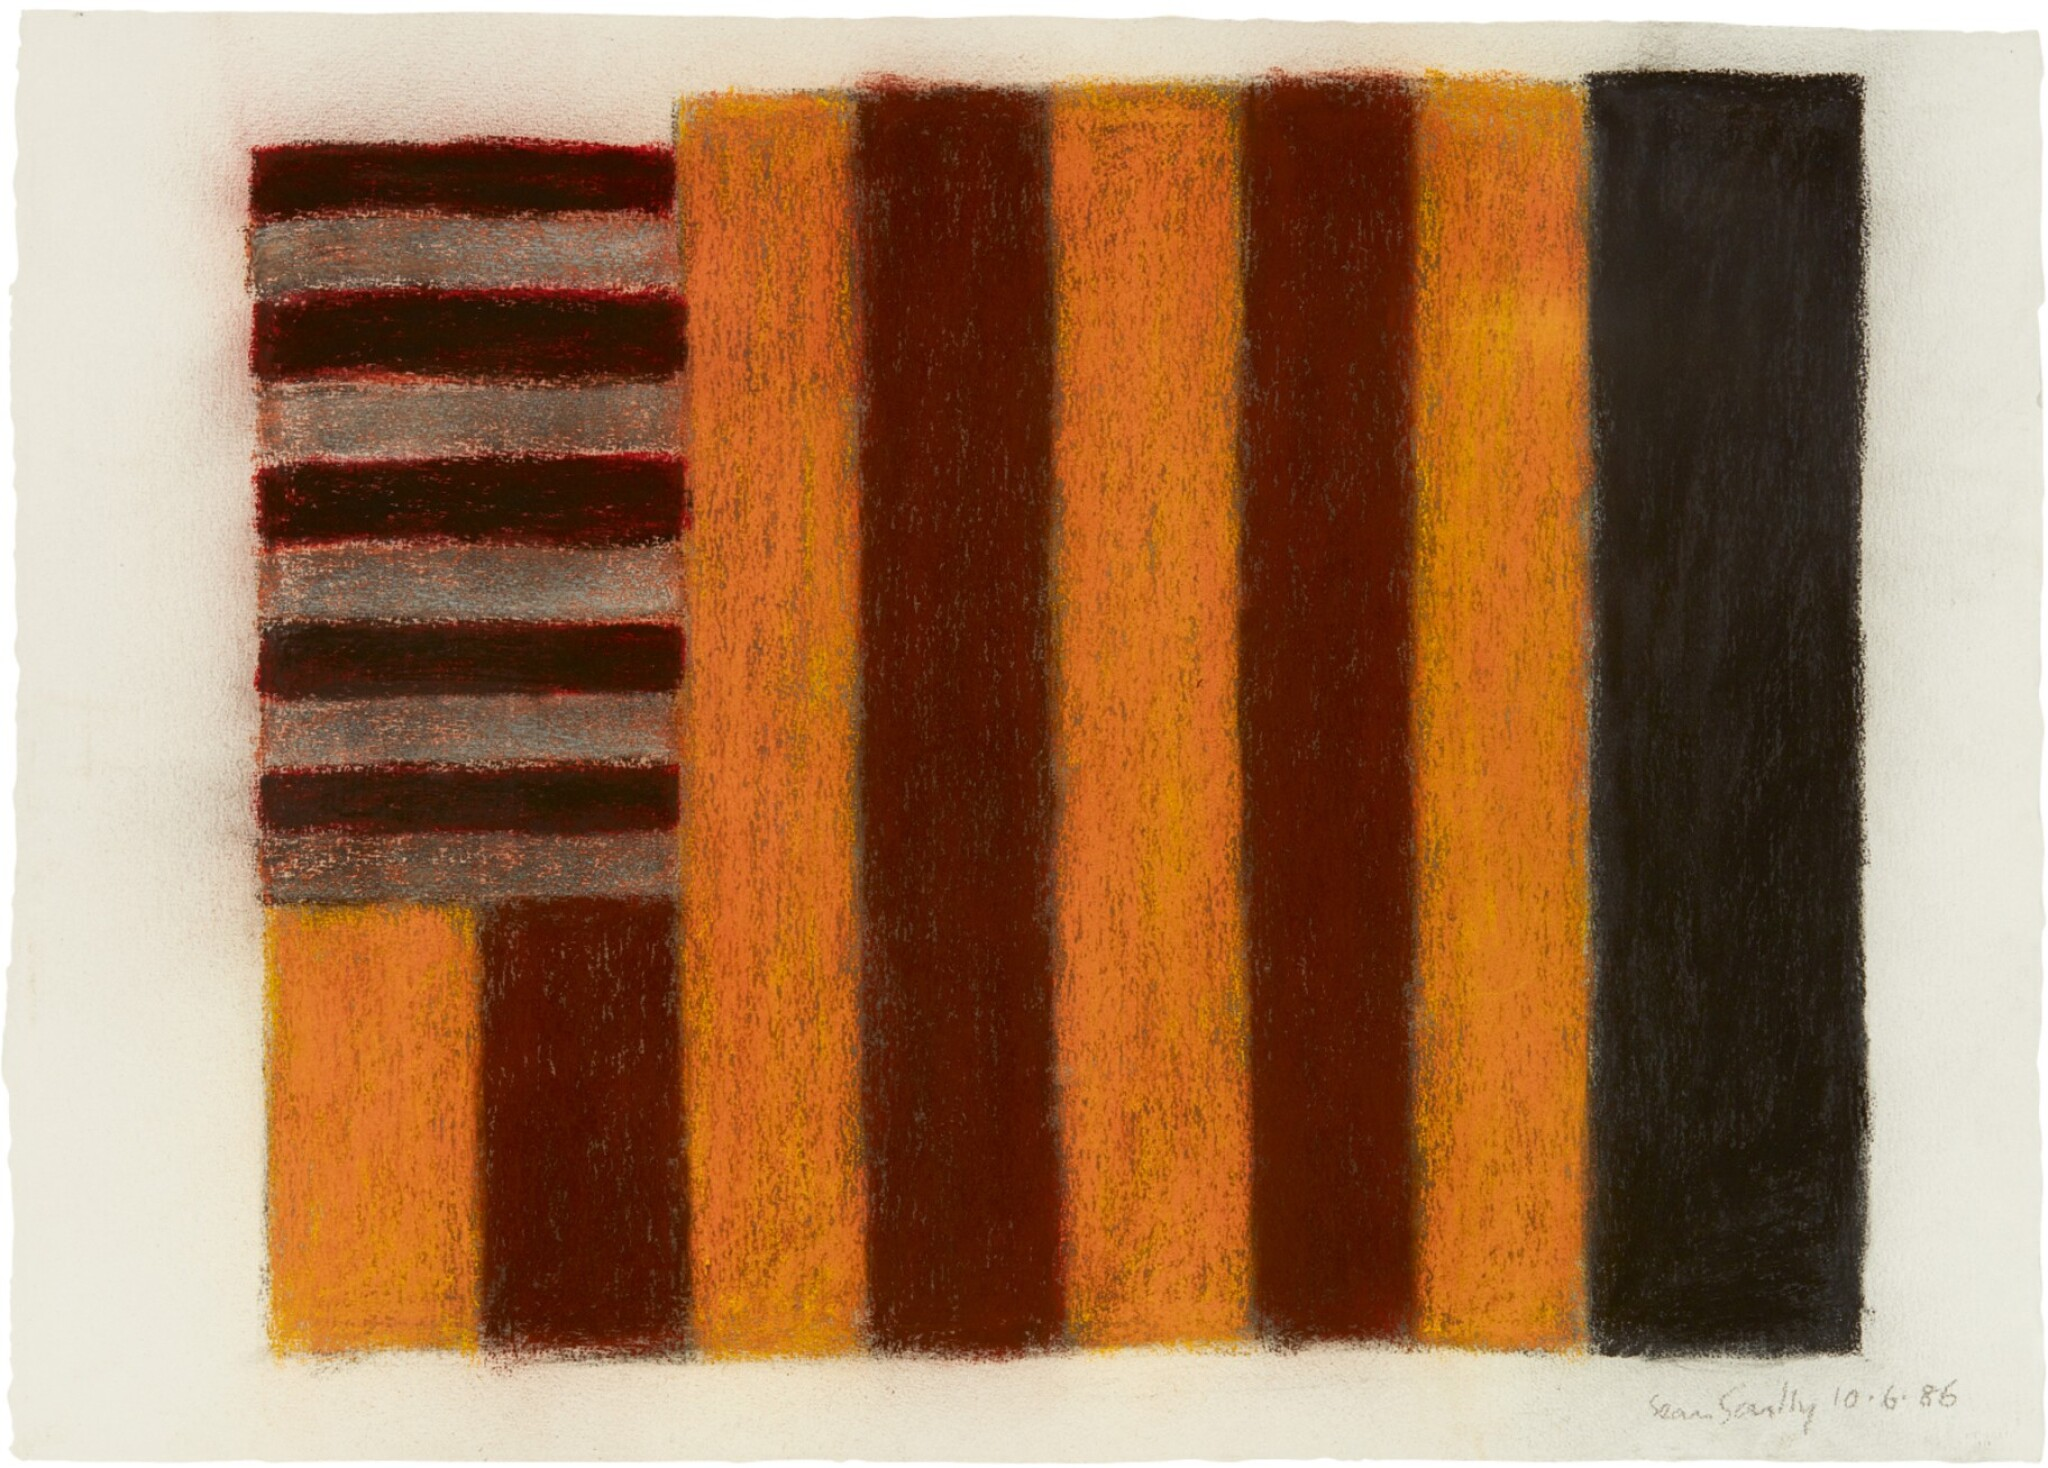 View 1 of Lot 215. SEAN SCULLY   10.6.86.